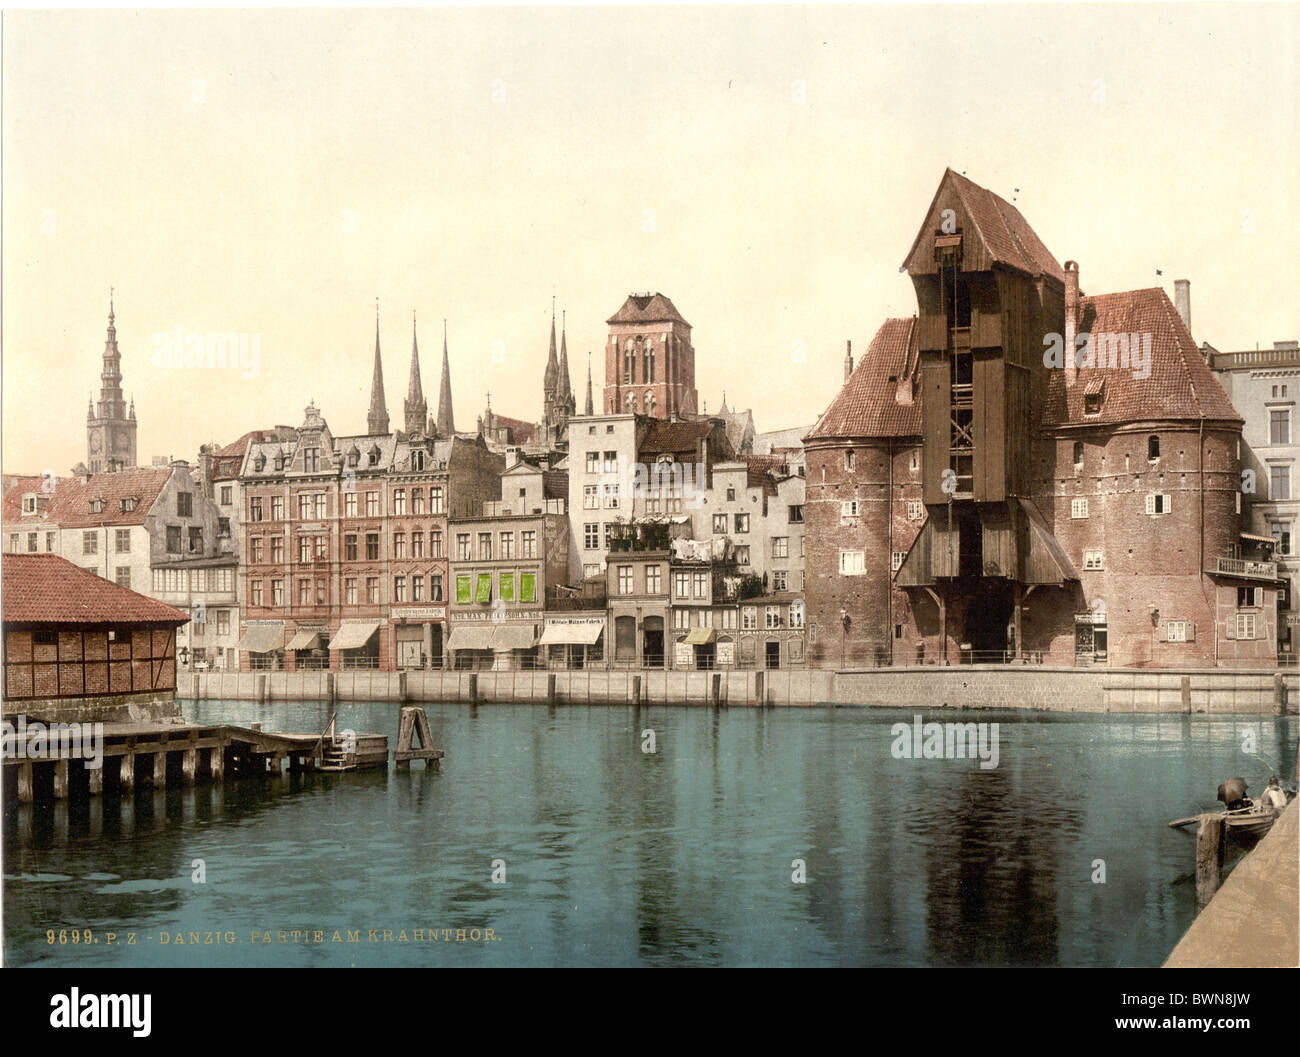 Krantor Danzig West Prussia formerly Germany Europe German Empire Poland Photochrom about 1900 history histo Stock Photo